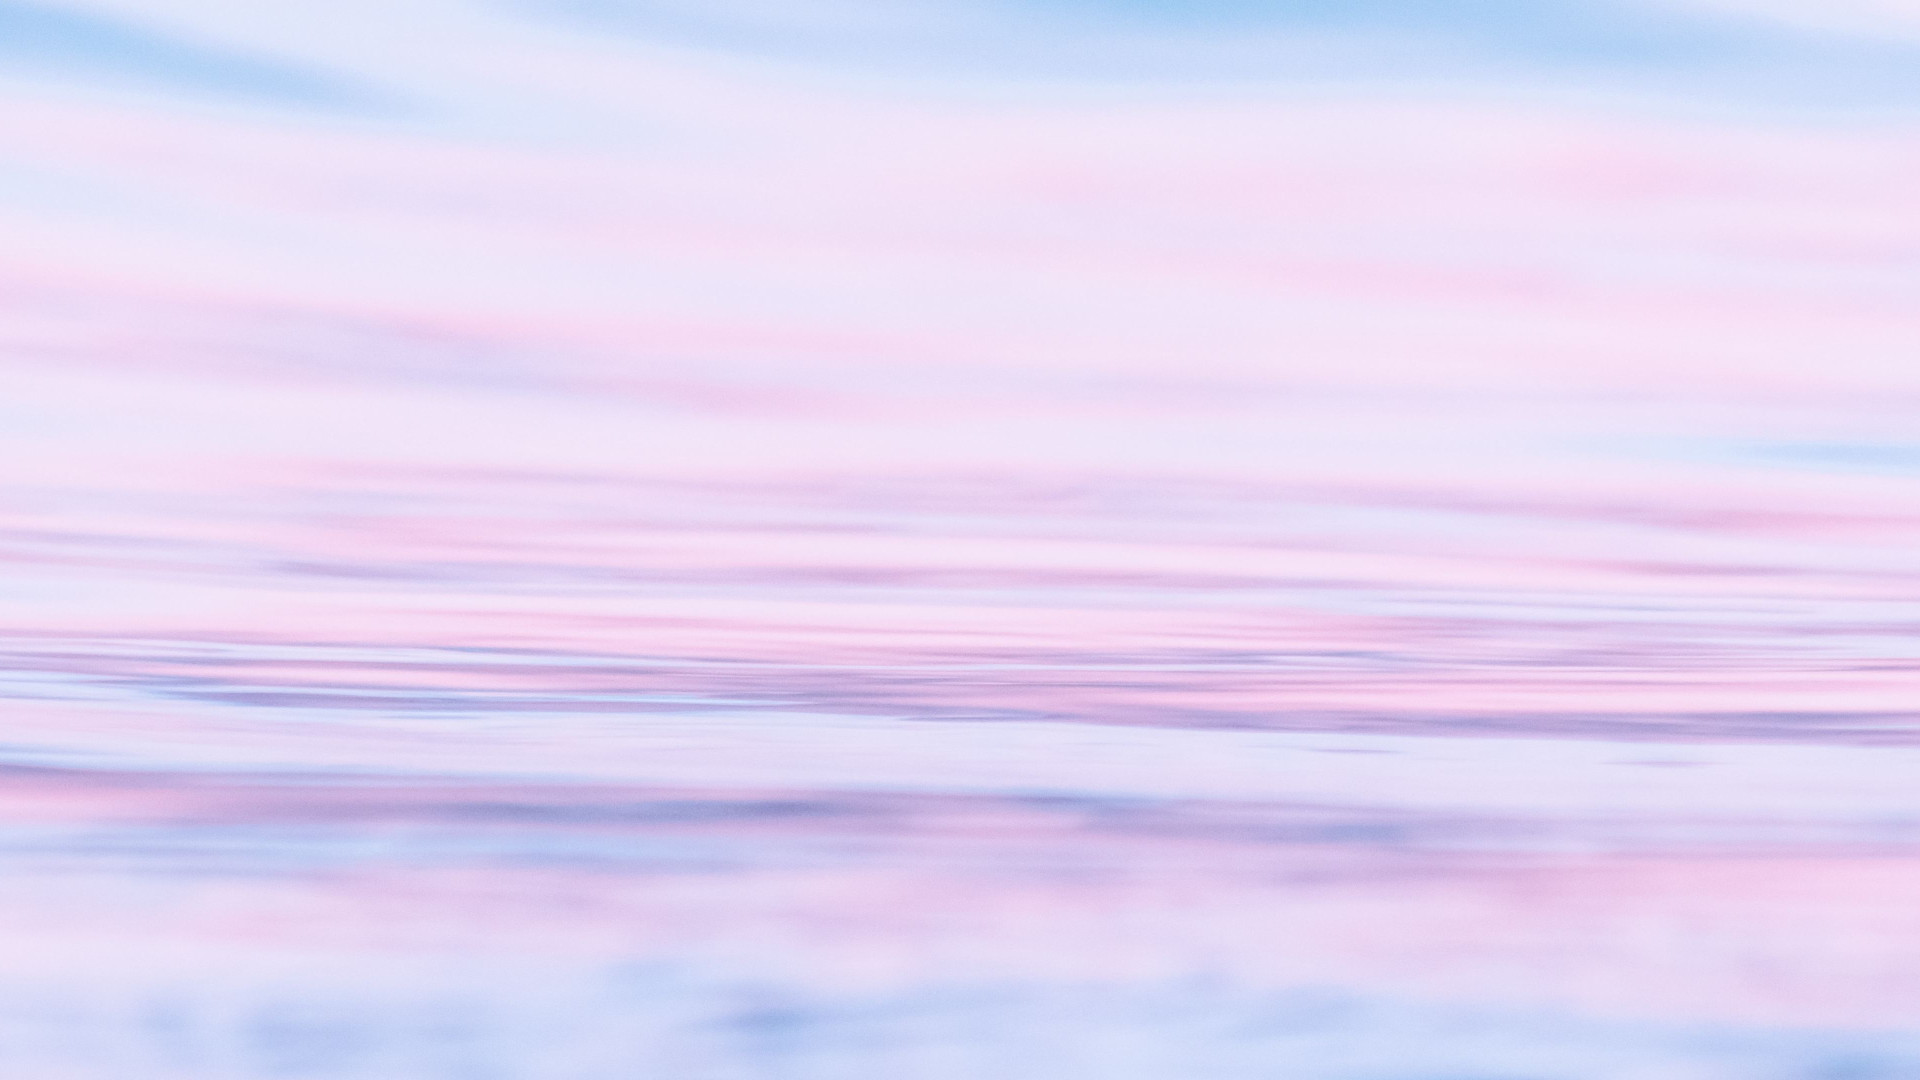 Pink Water - Zoom Virtual Background